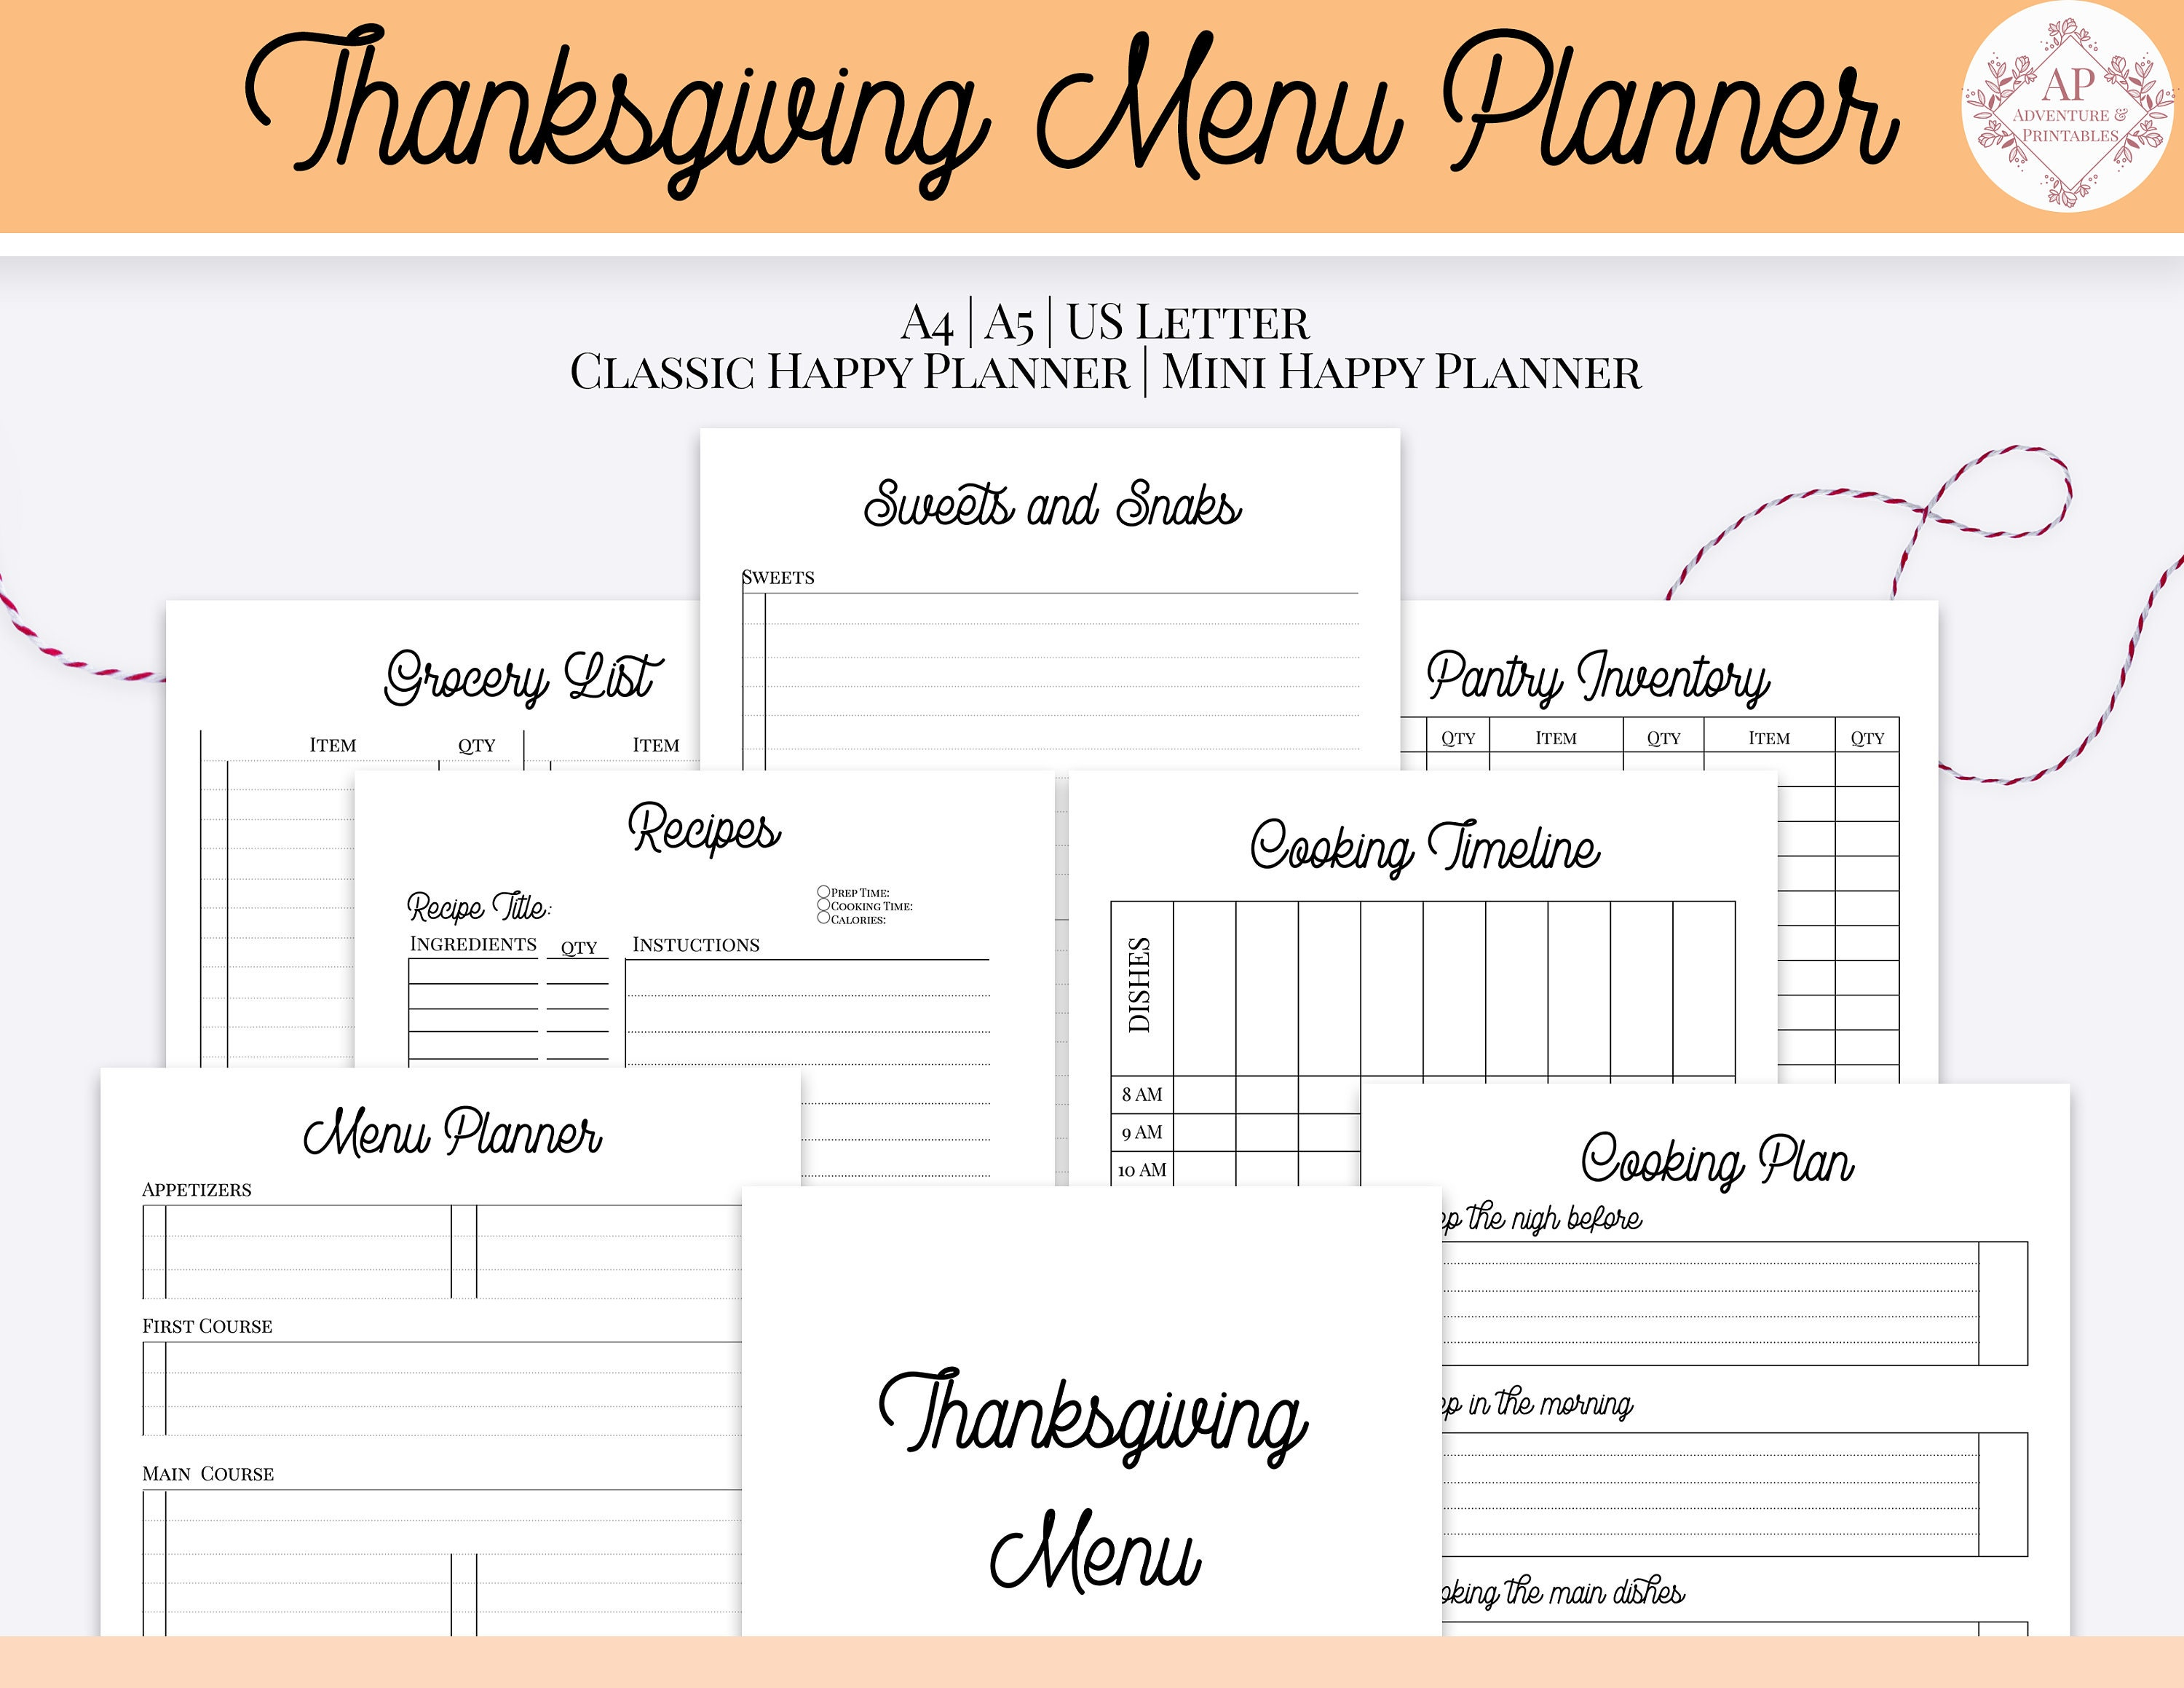 image about Thanksgiving Menu Planner Printable named Thanksgiving Menu Planner, Thorough Thanksgiving Evening meal Planner, Thanksgiving Planner